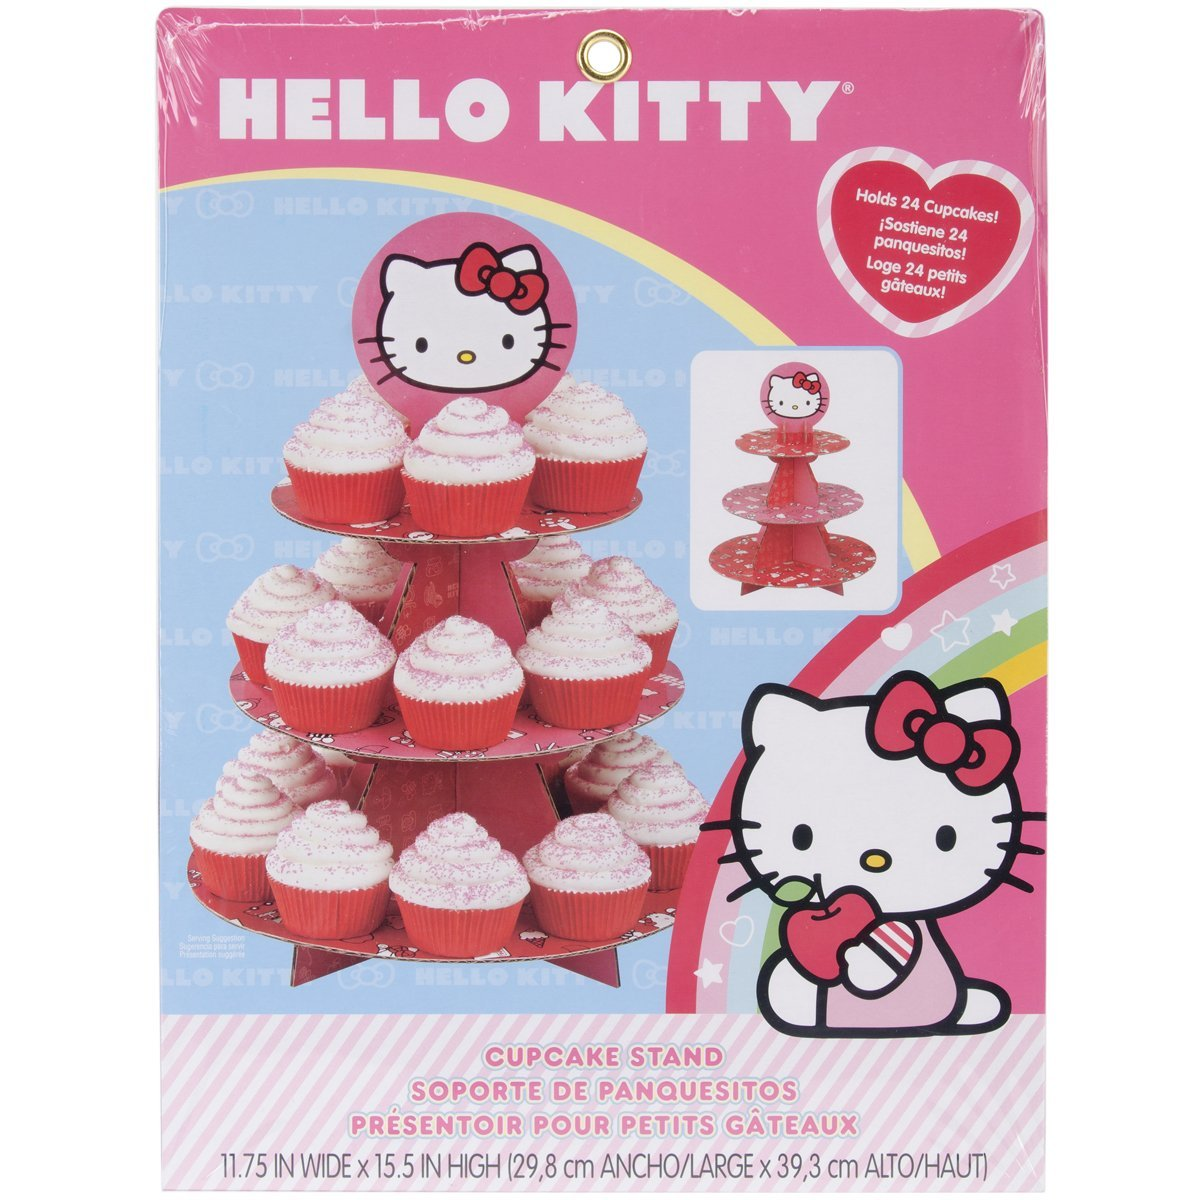 Wilton 3-Tier Treat Stand, Hello Kitty 24 ct. 1512-7575